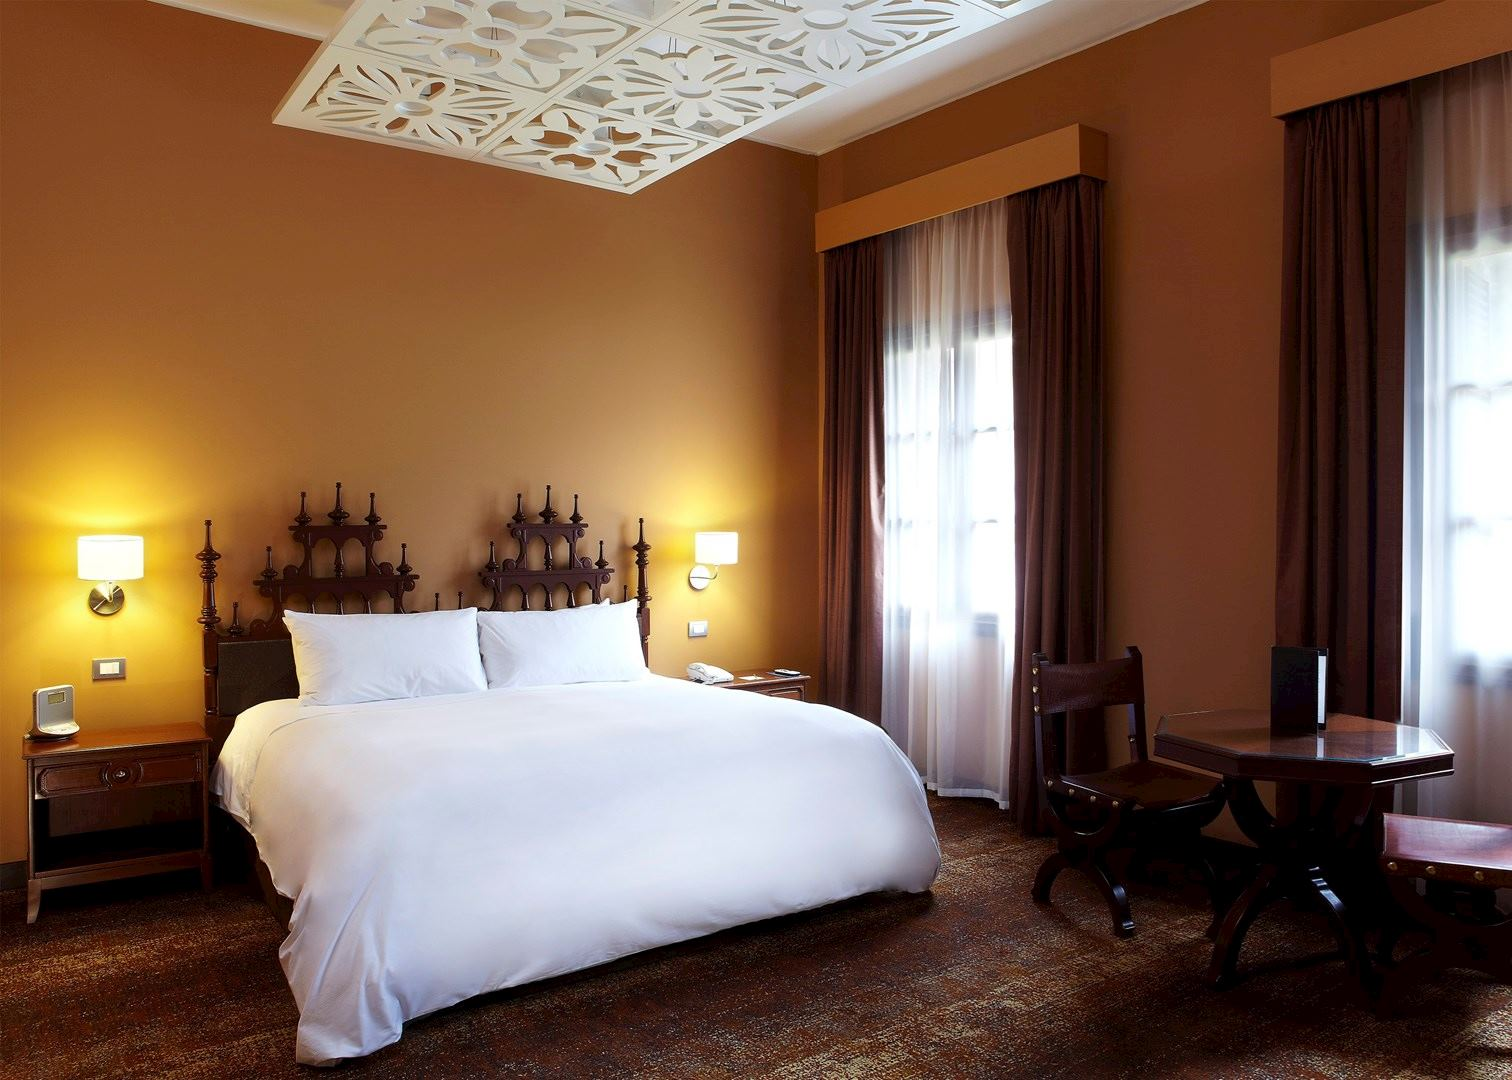 Hotel libertador arequipa arequipa hotels audley travel for Superior hotel